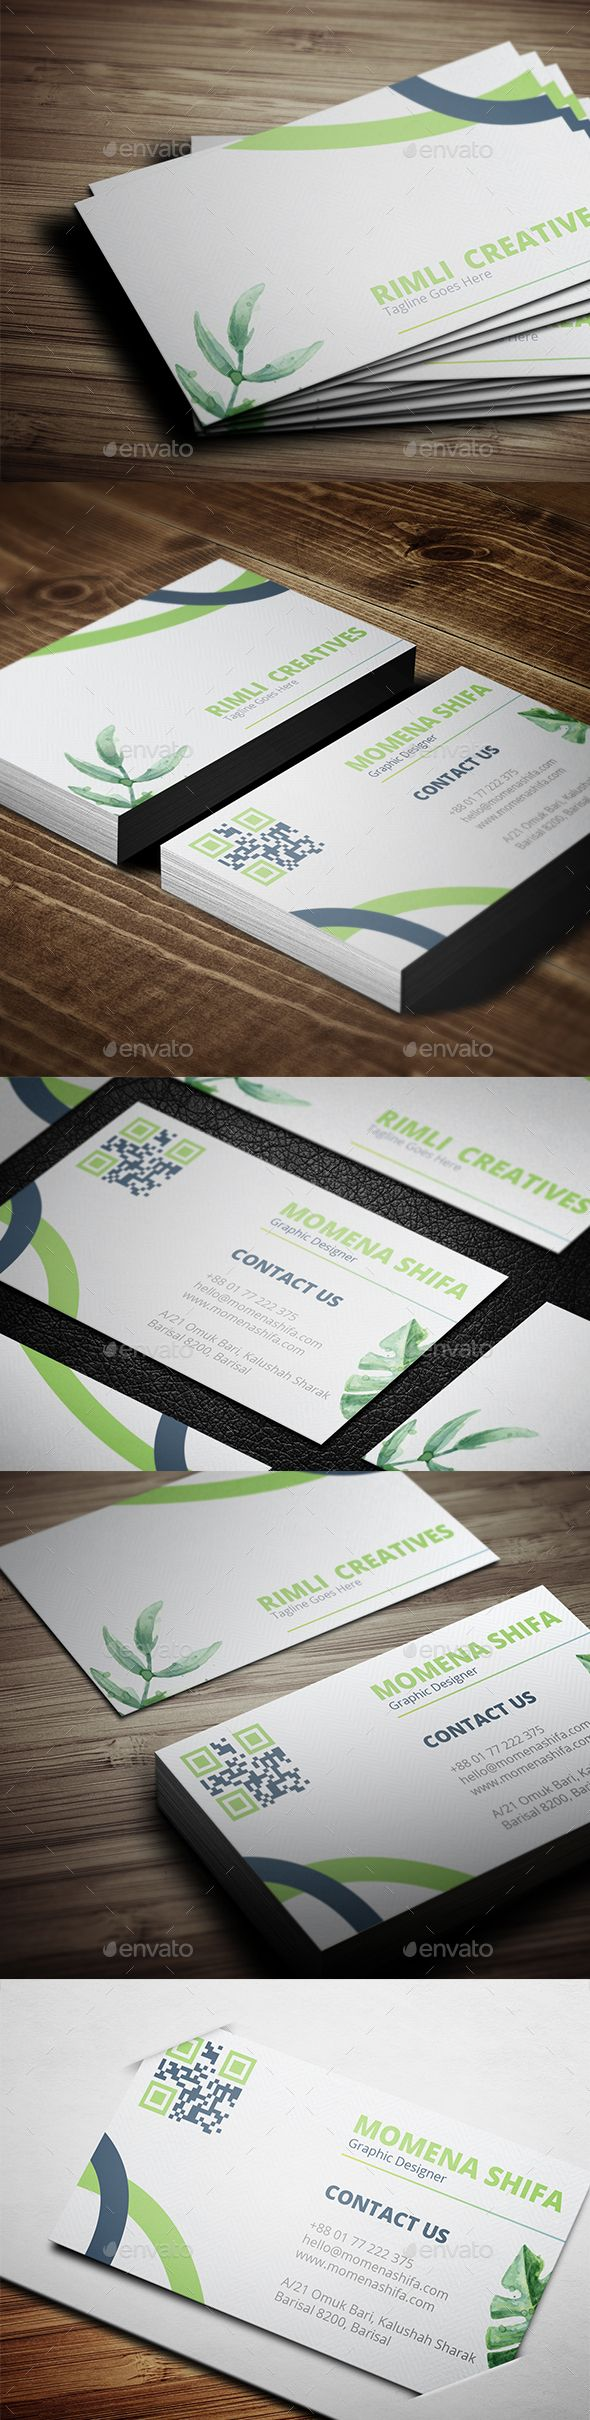 Sleek Business Card Design | Business cards, Business and Business ...